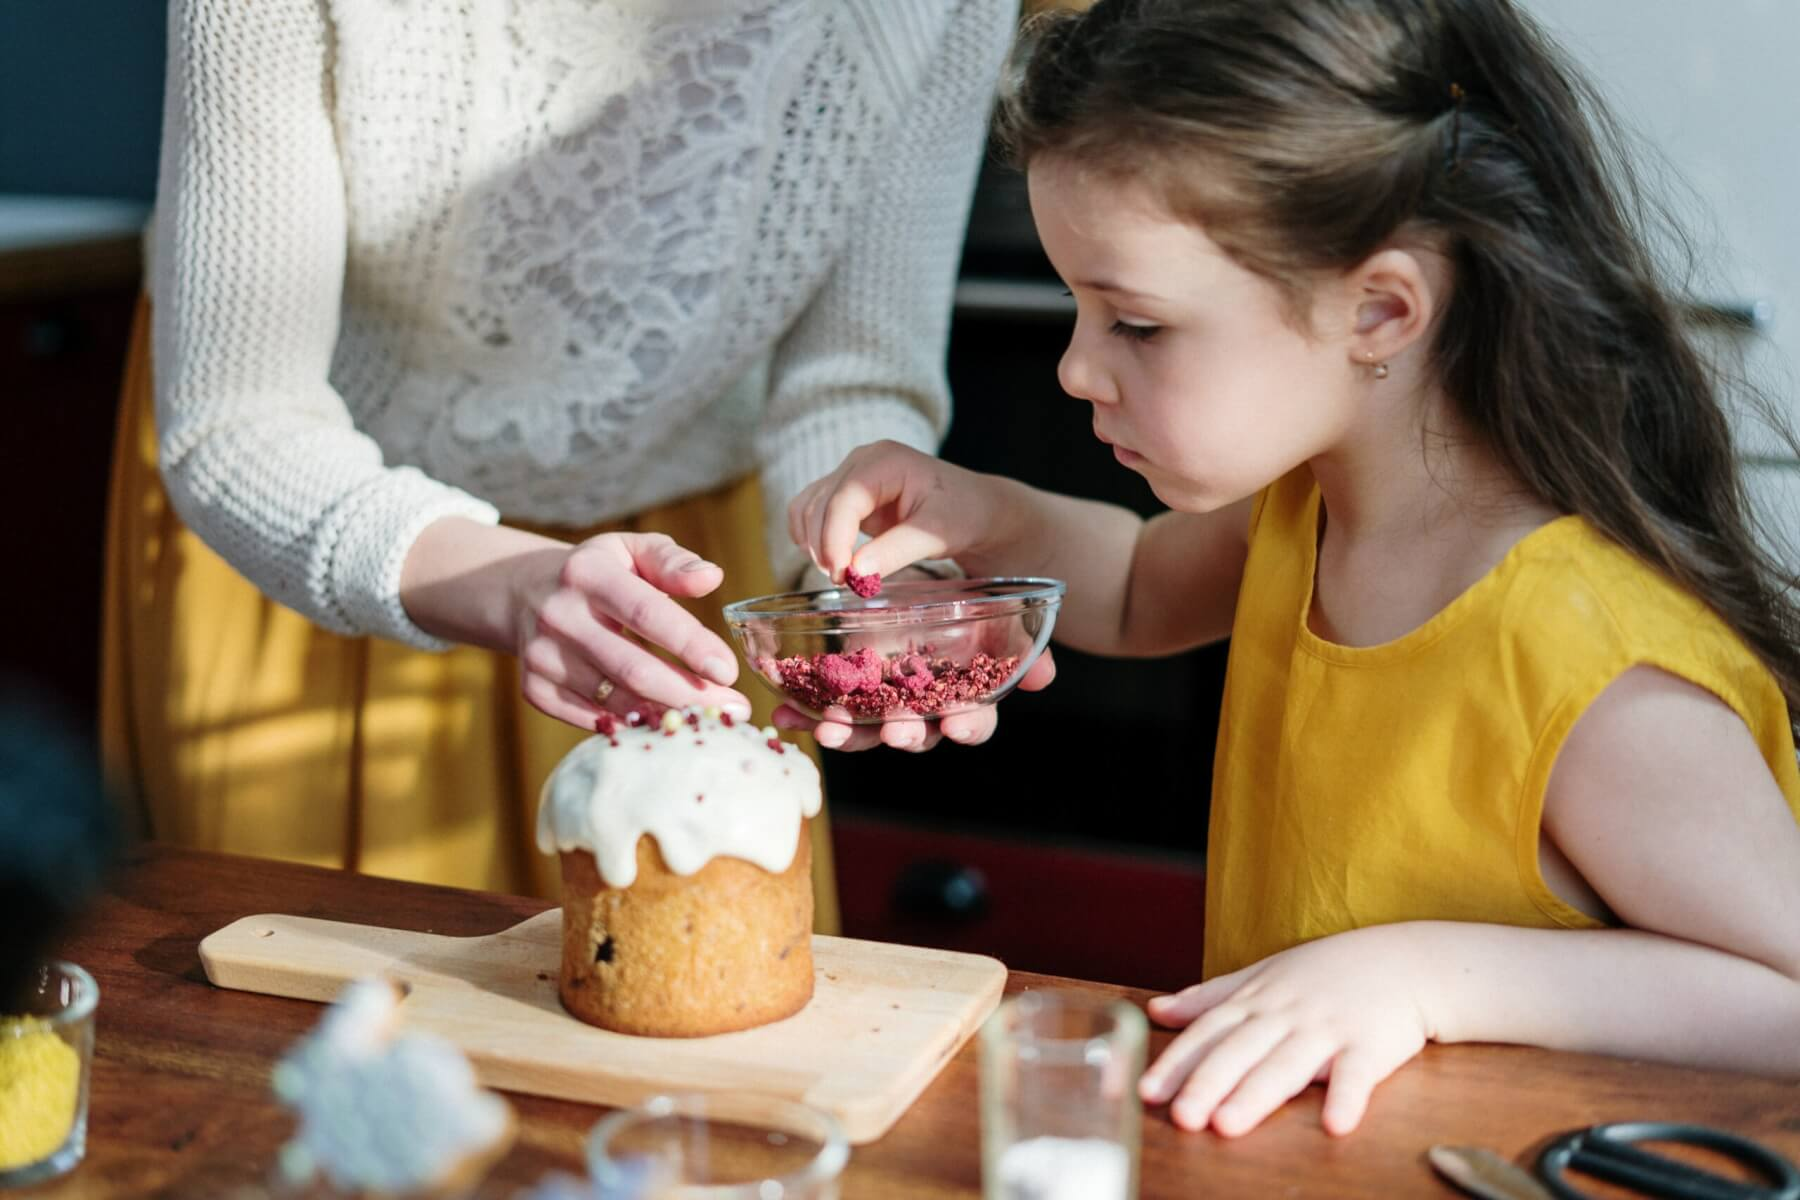 Young girl sprinkling toppings on a dessert with her mother